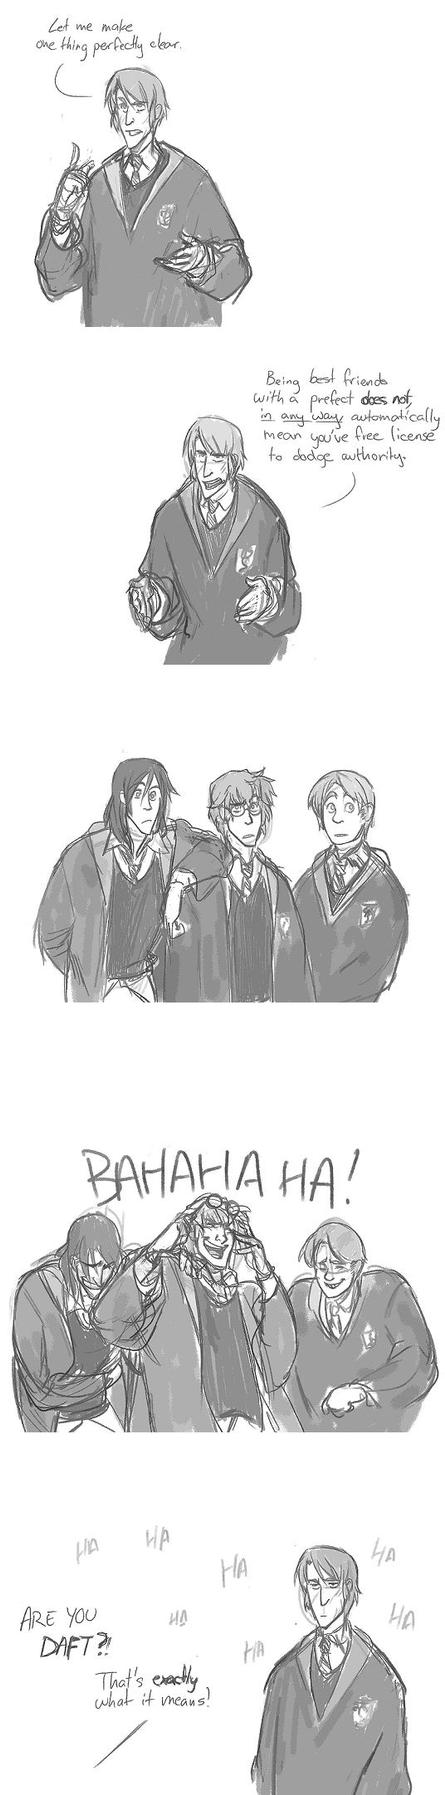 harry potter - perfectly clear by chirart